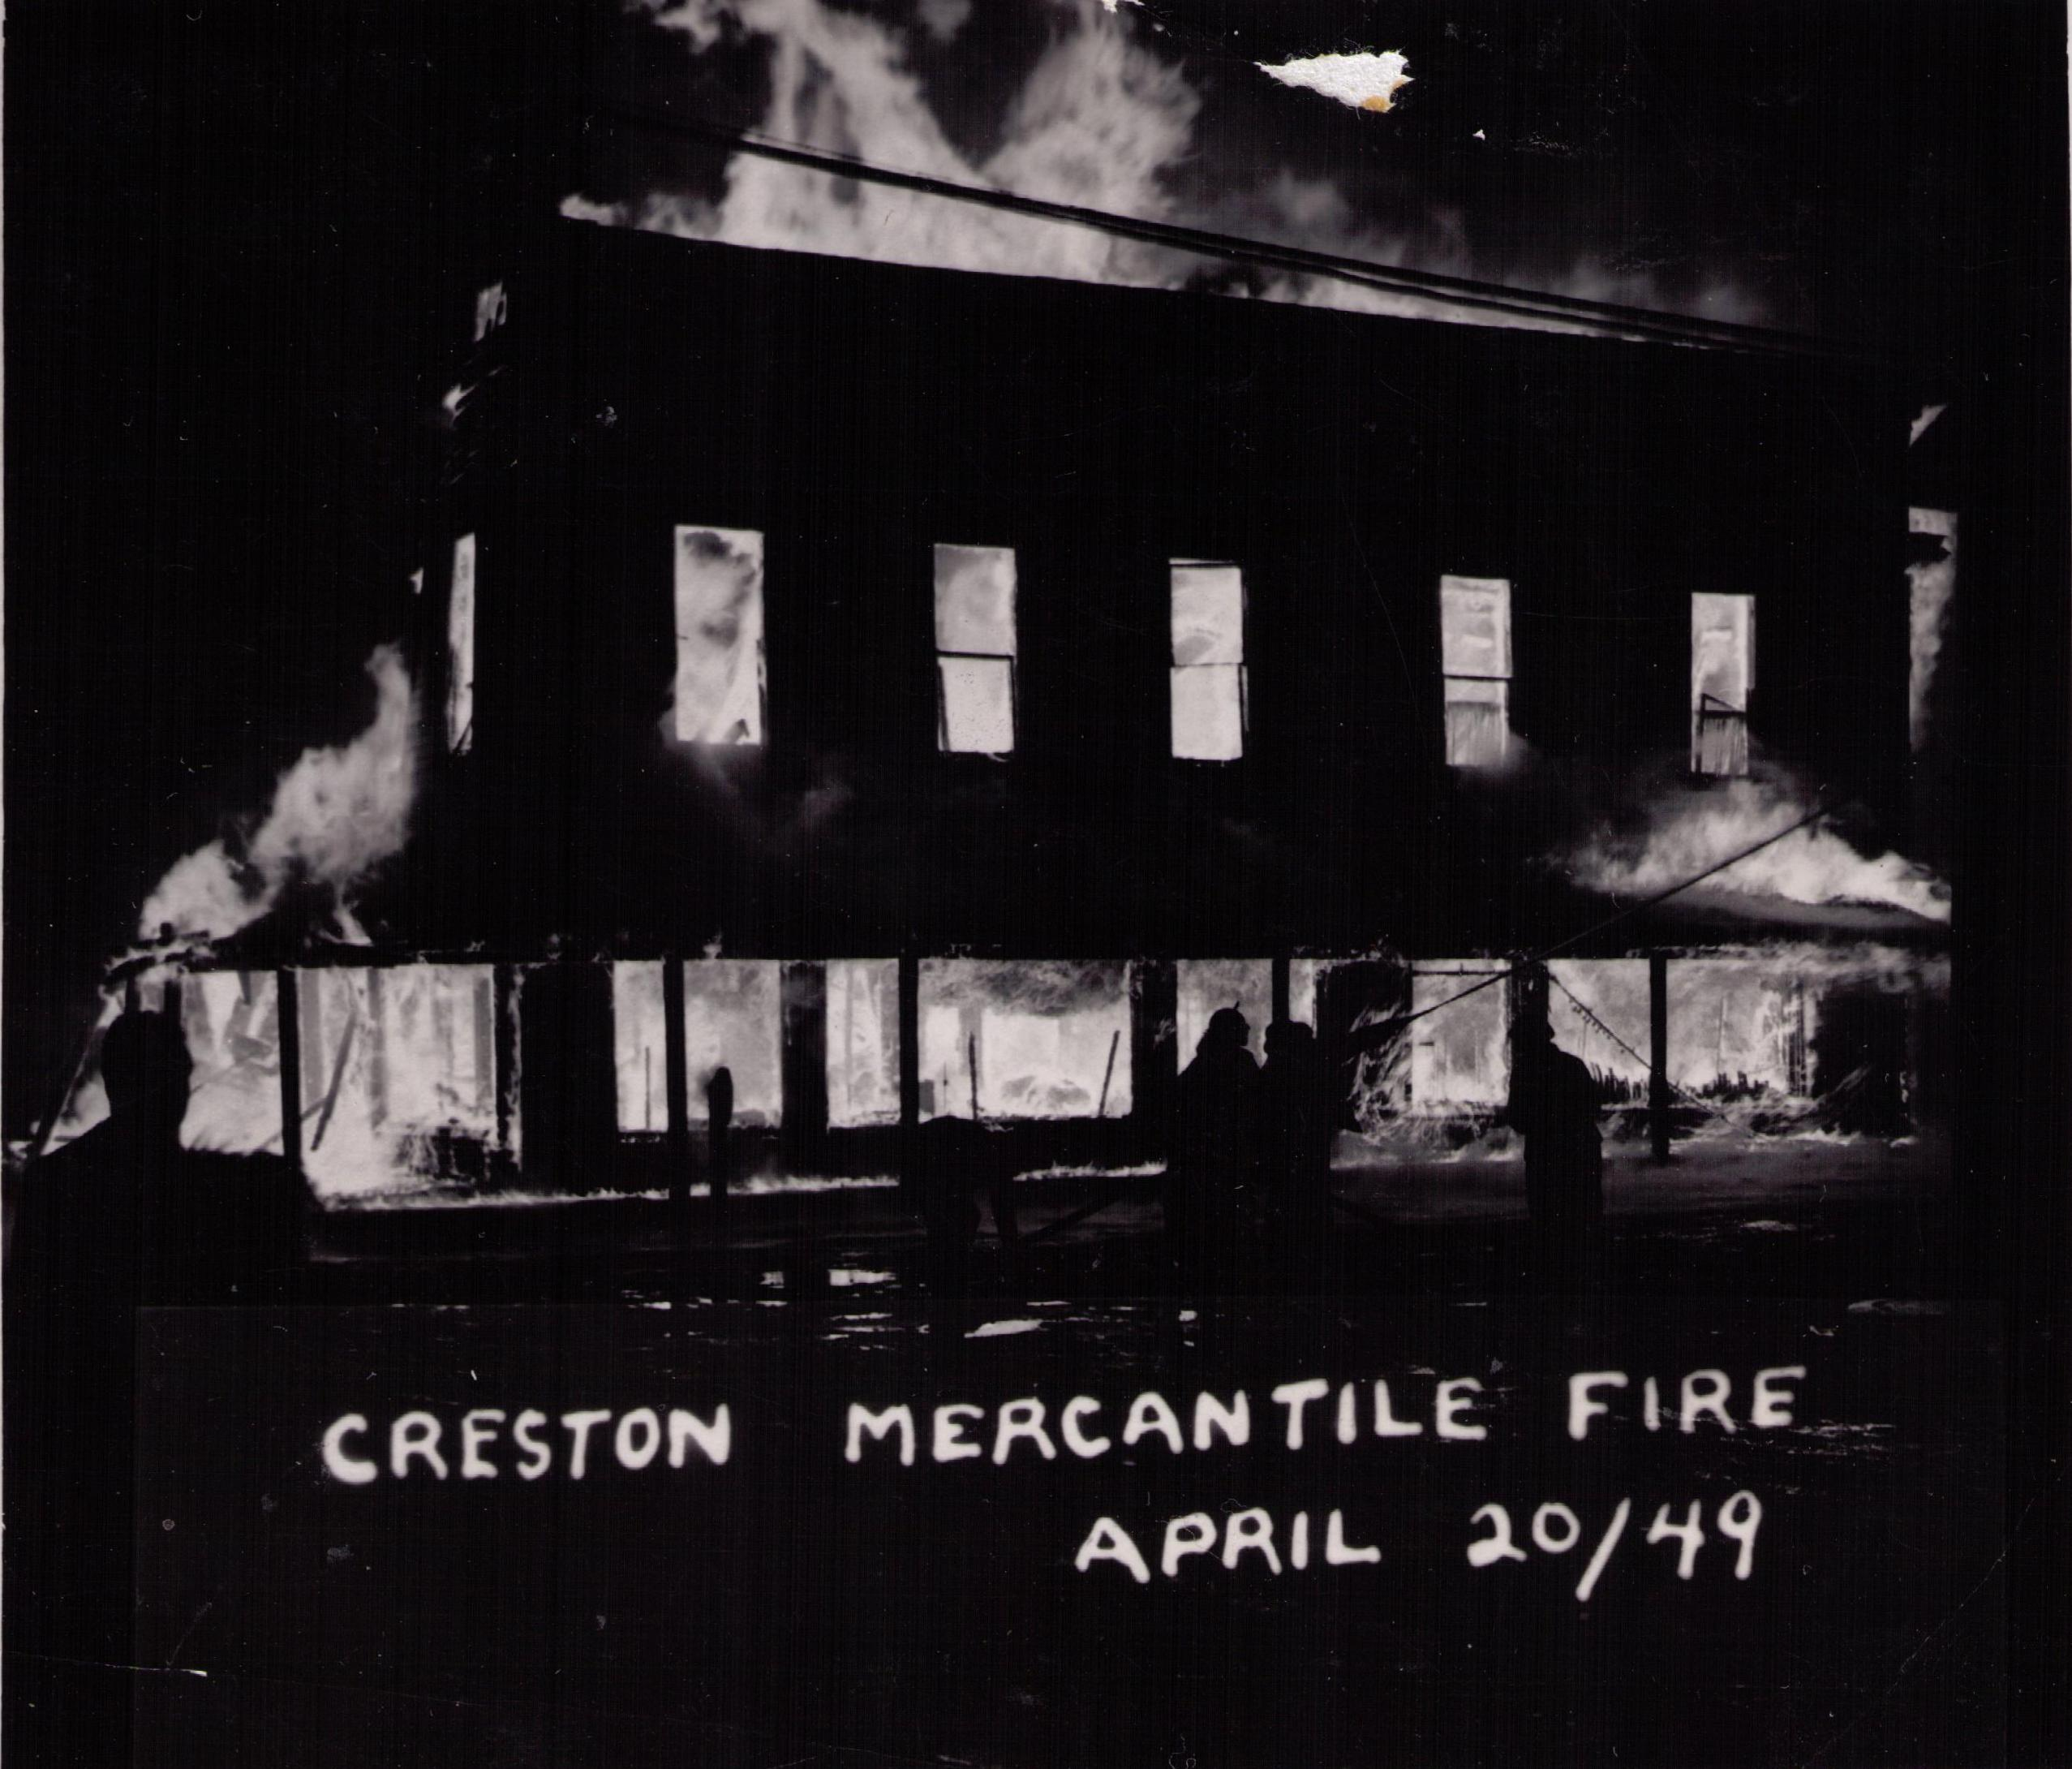 Creston Mercantile Fire, 1949, Creston BC